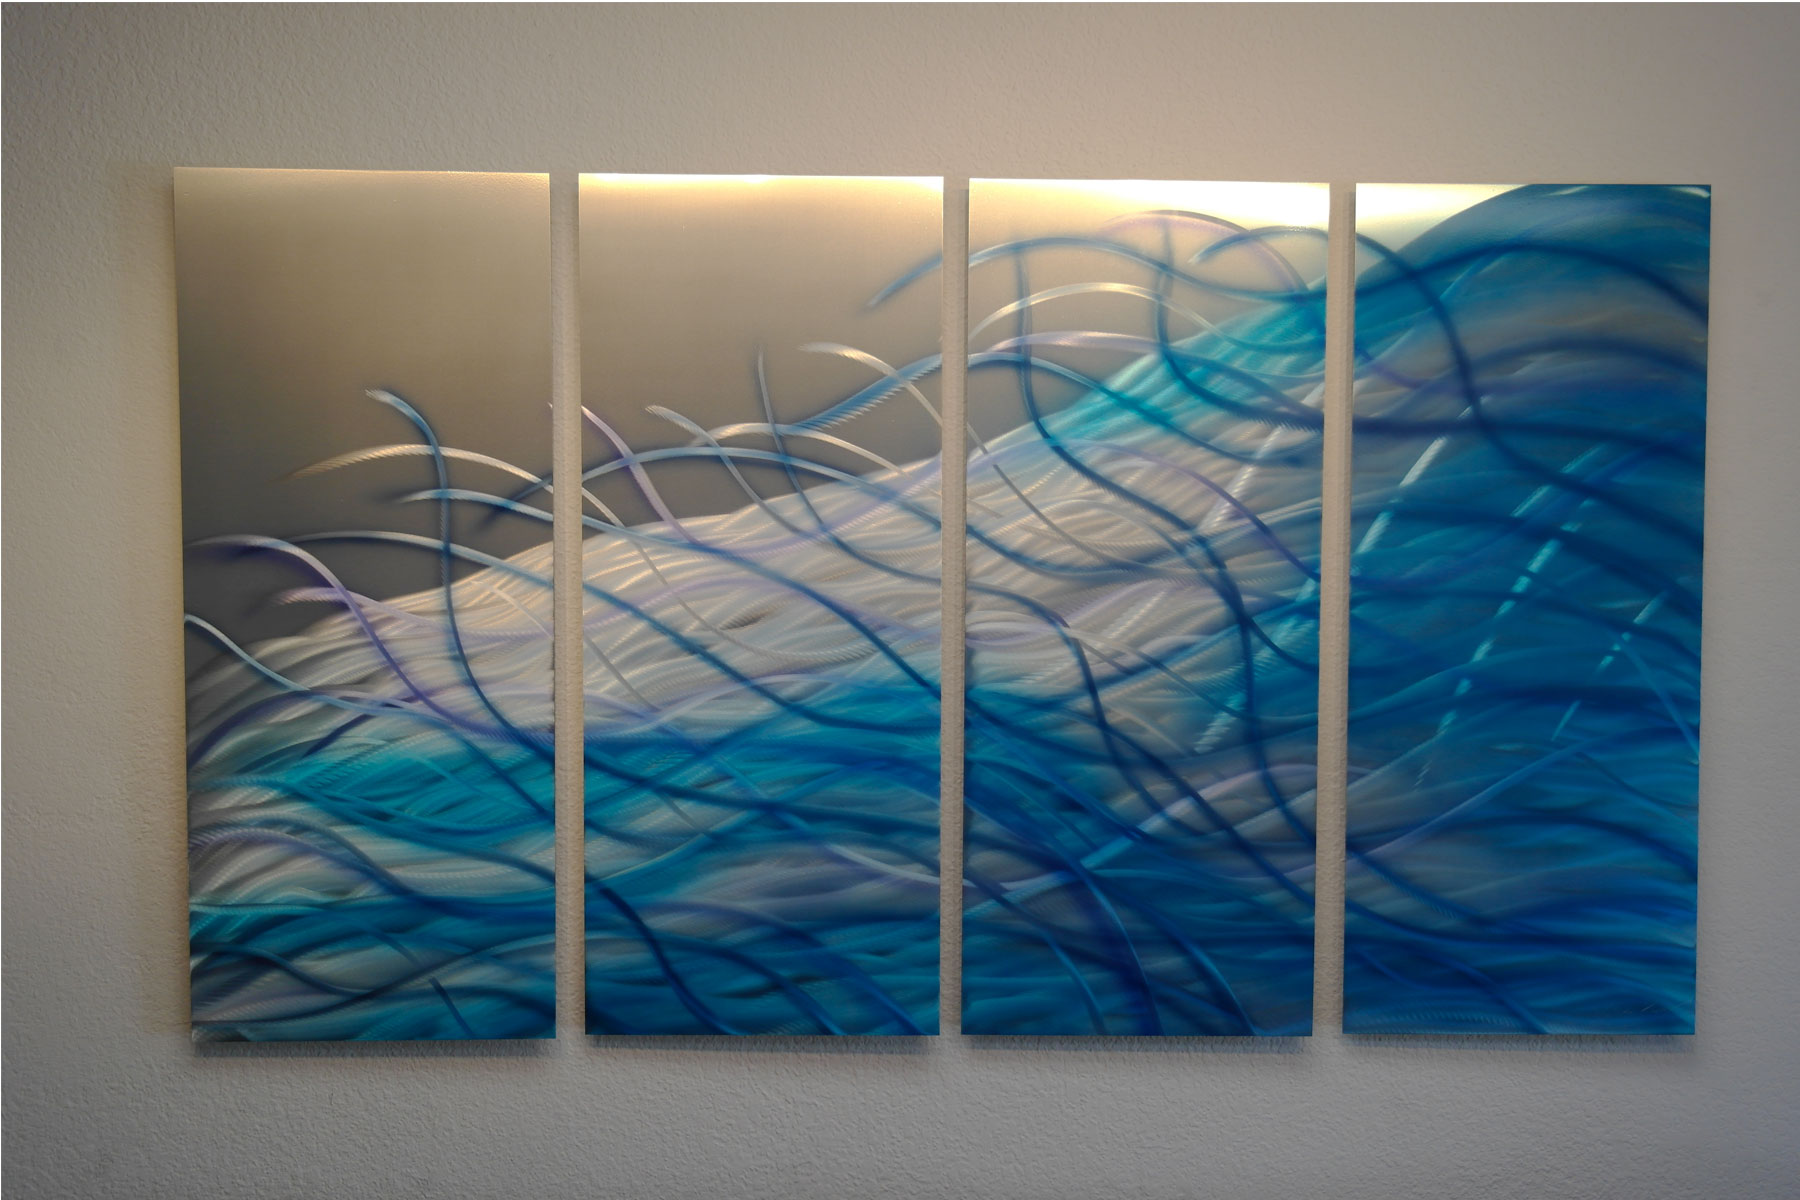 Blue Metal Wall Art Unique Resonance Blue 36  Abstract Metal Wall Art Contemporary Modern Design Decoration